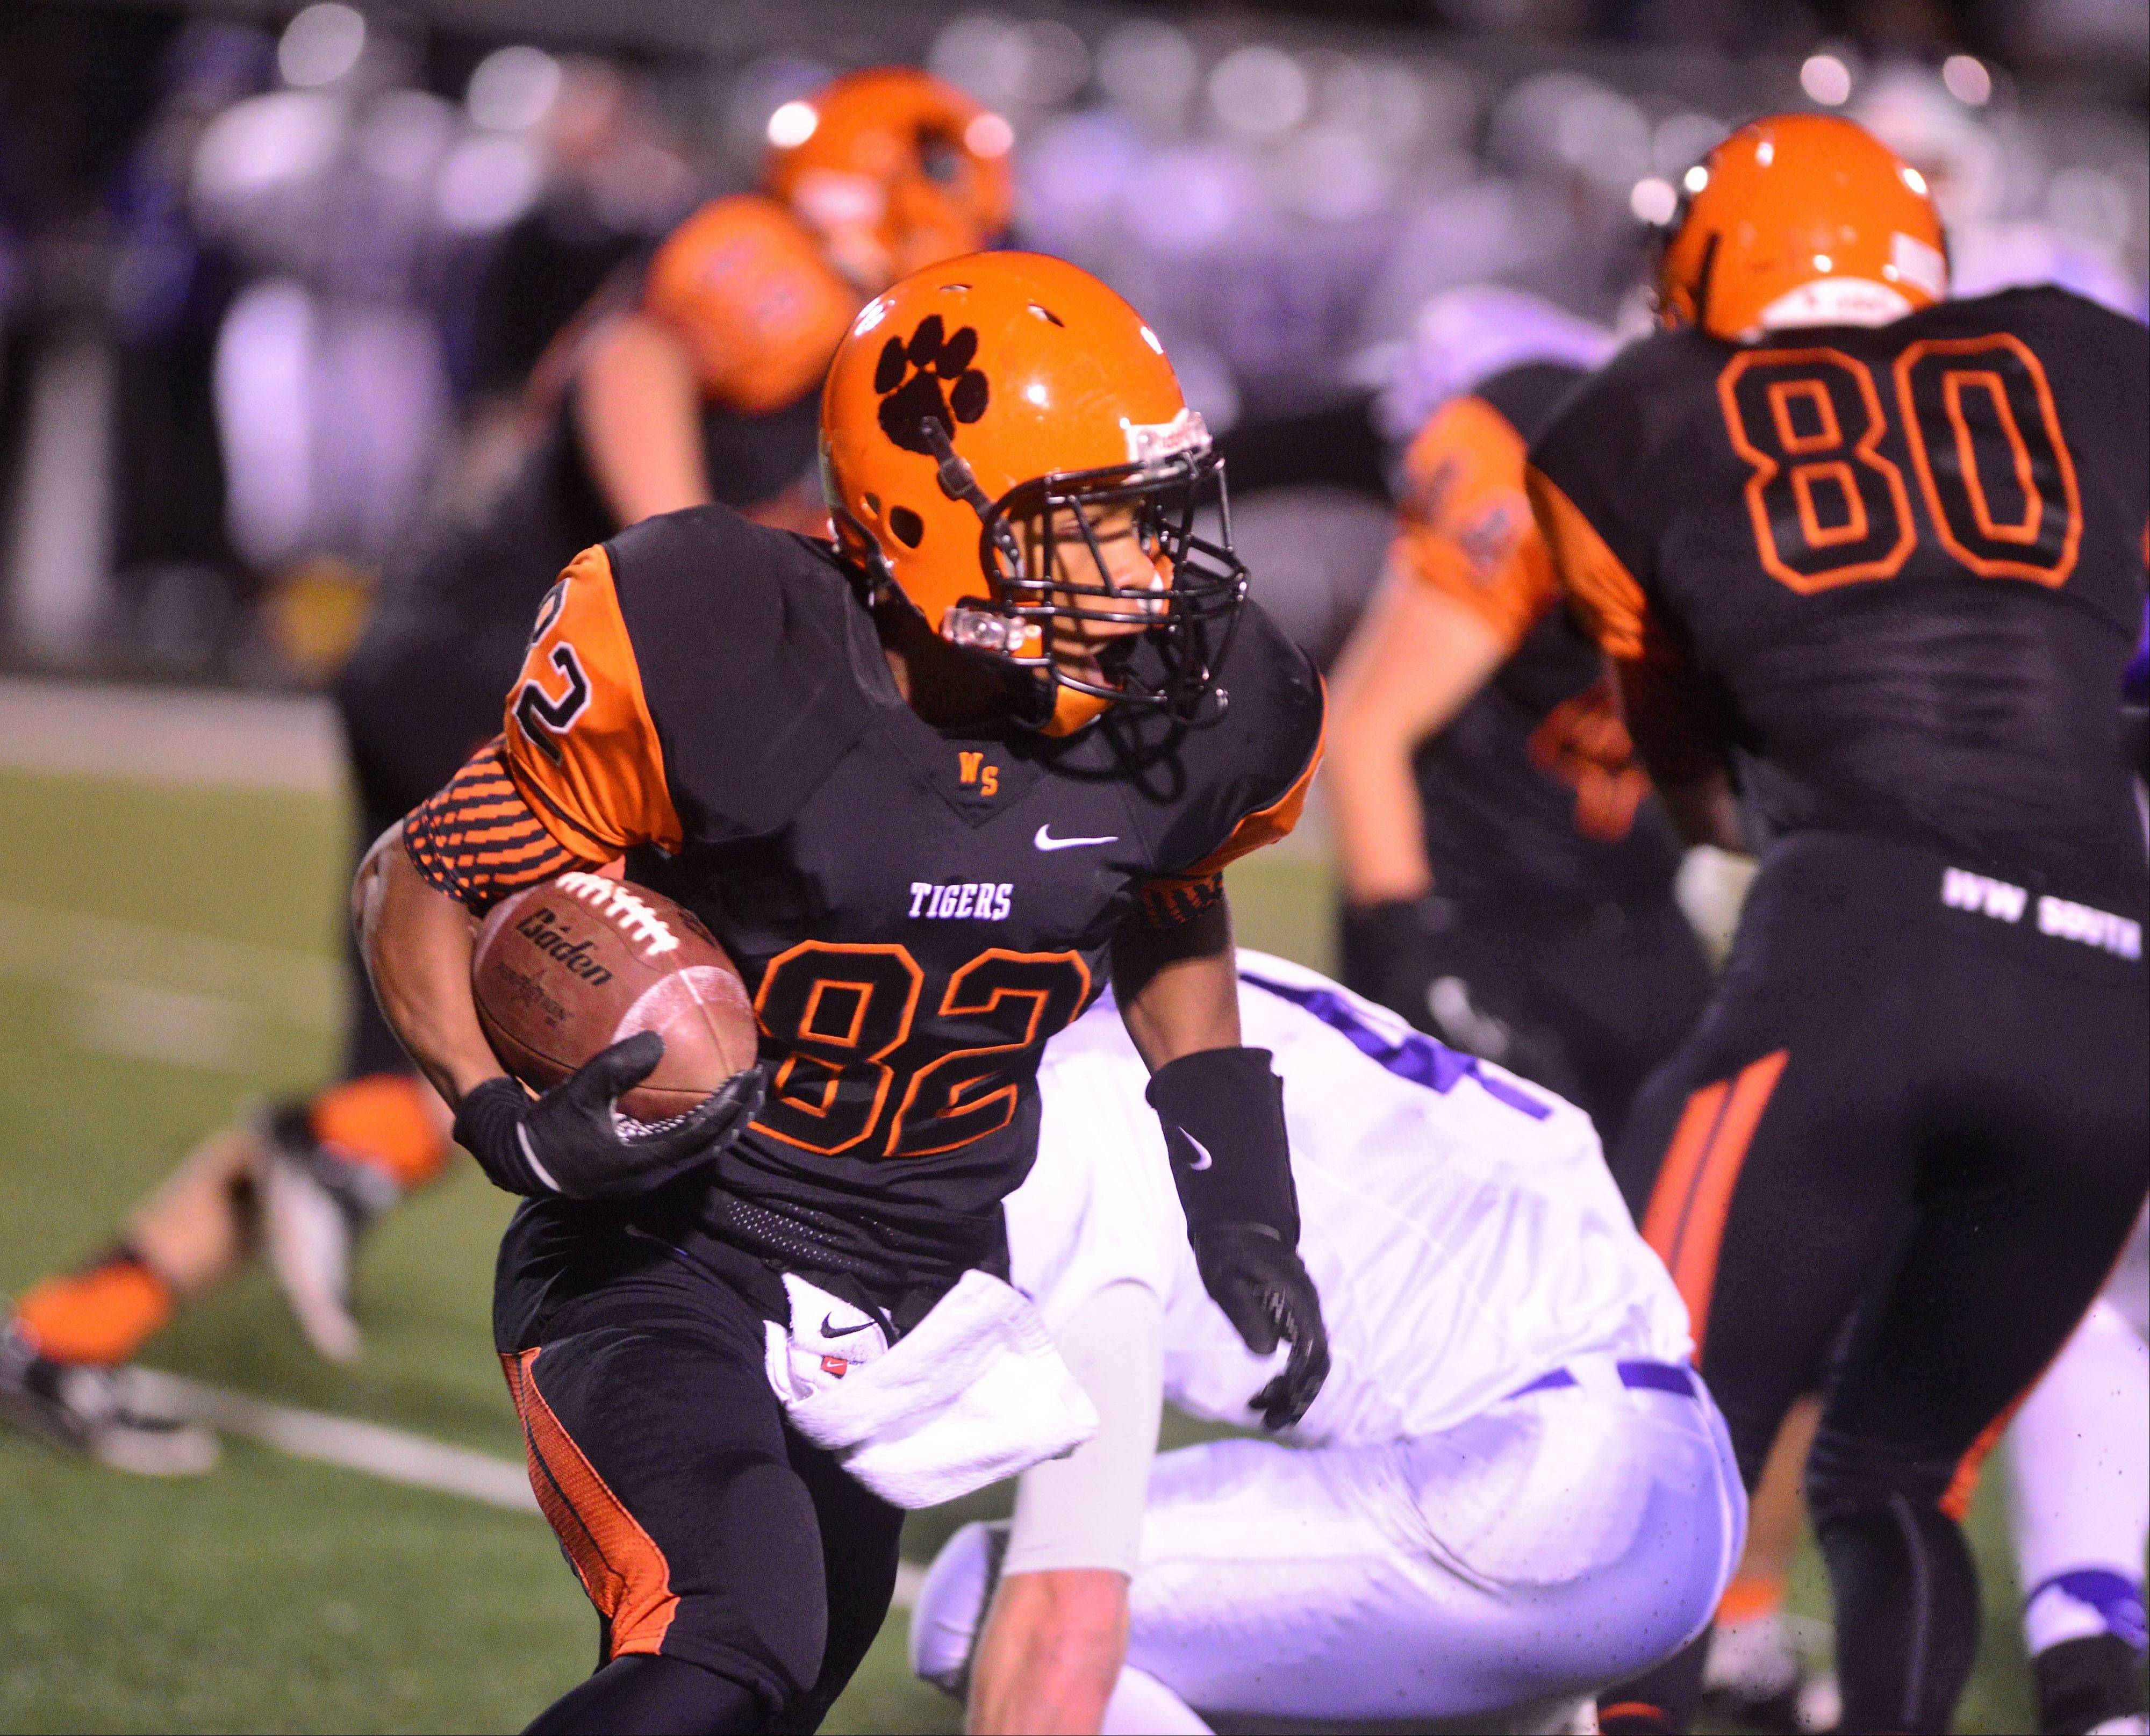 Keishawn Watson of Wheaton Warrenville South moves the ball.